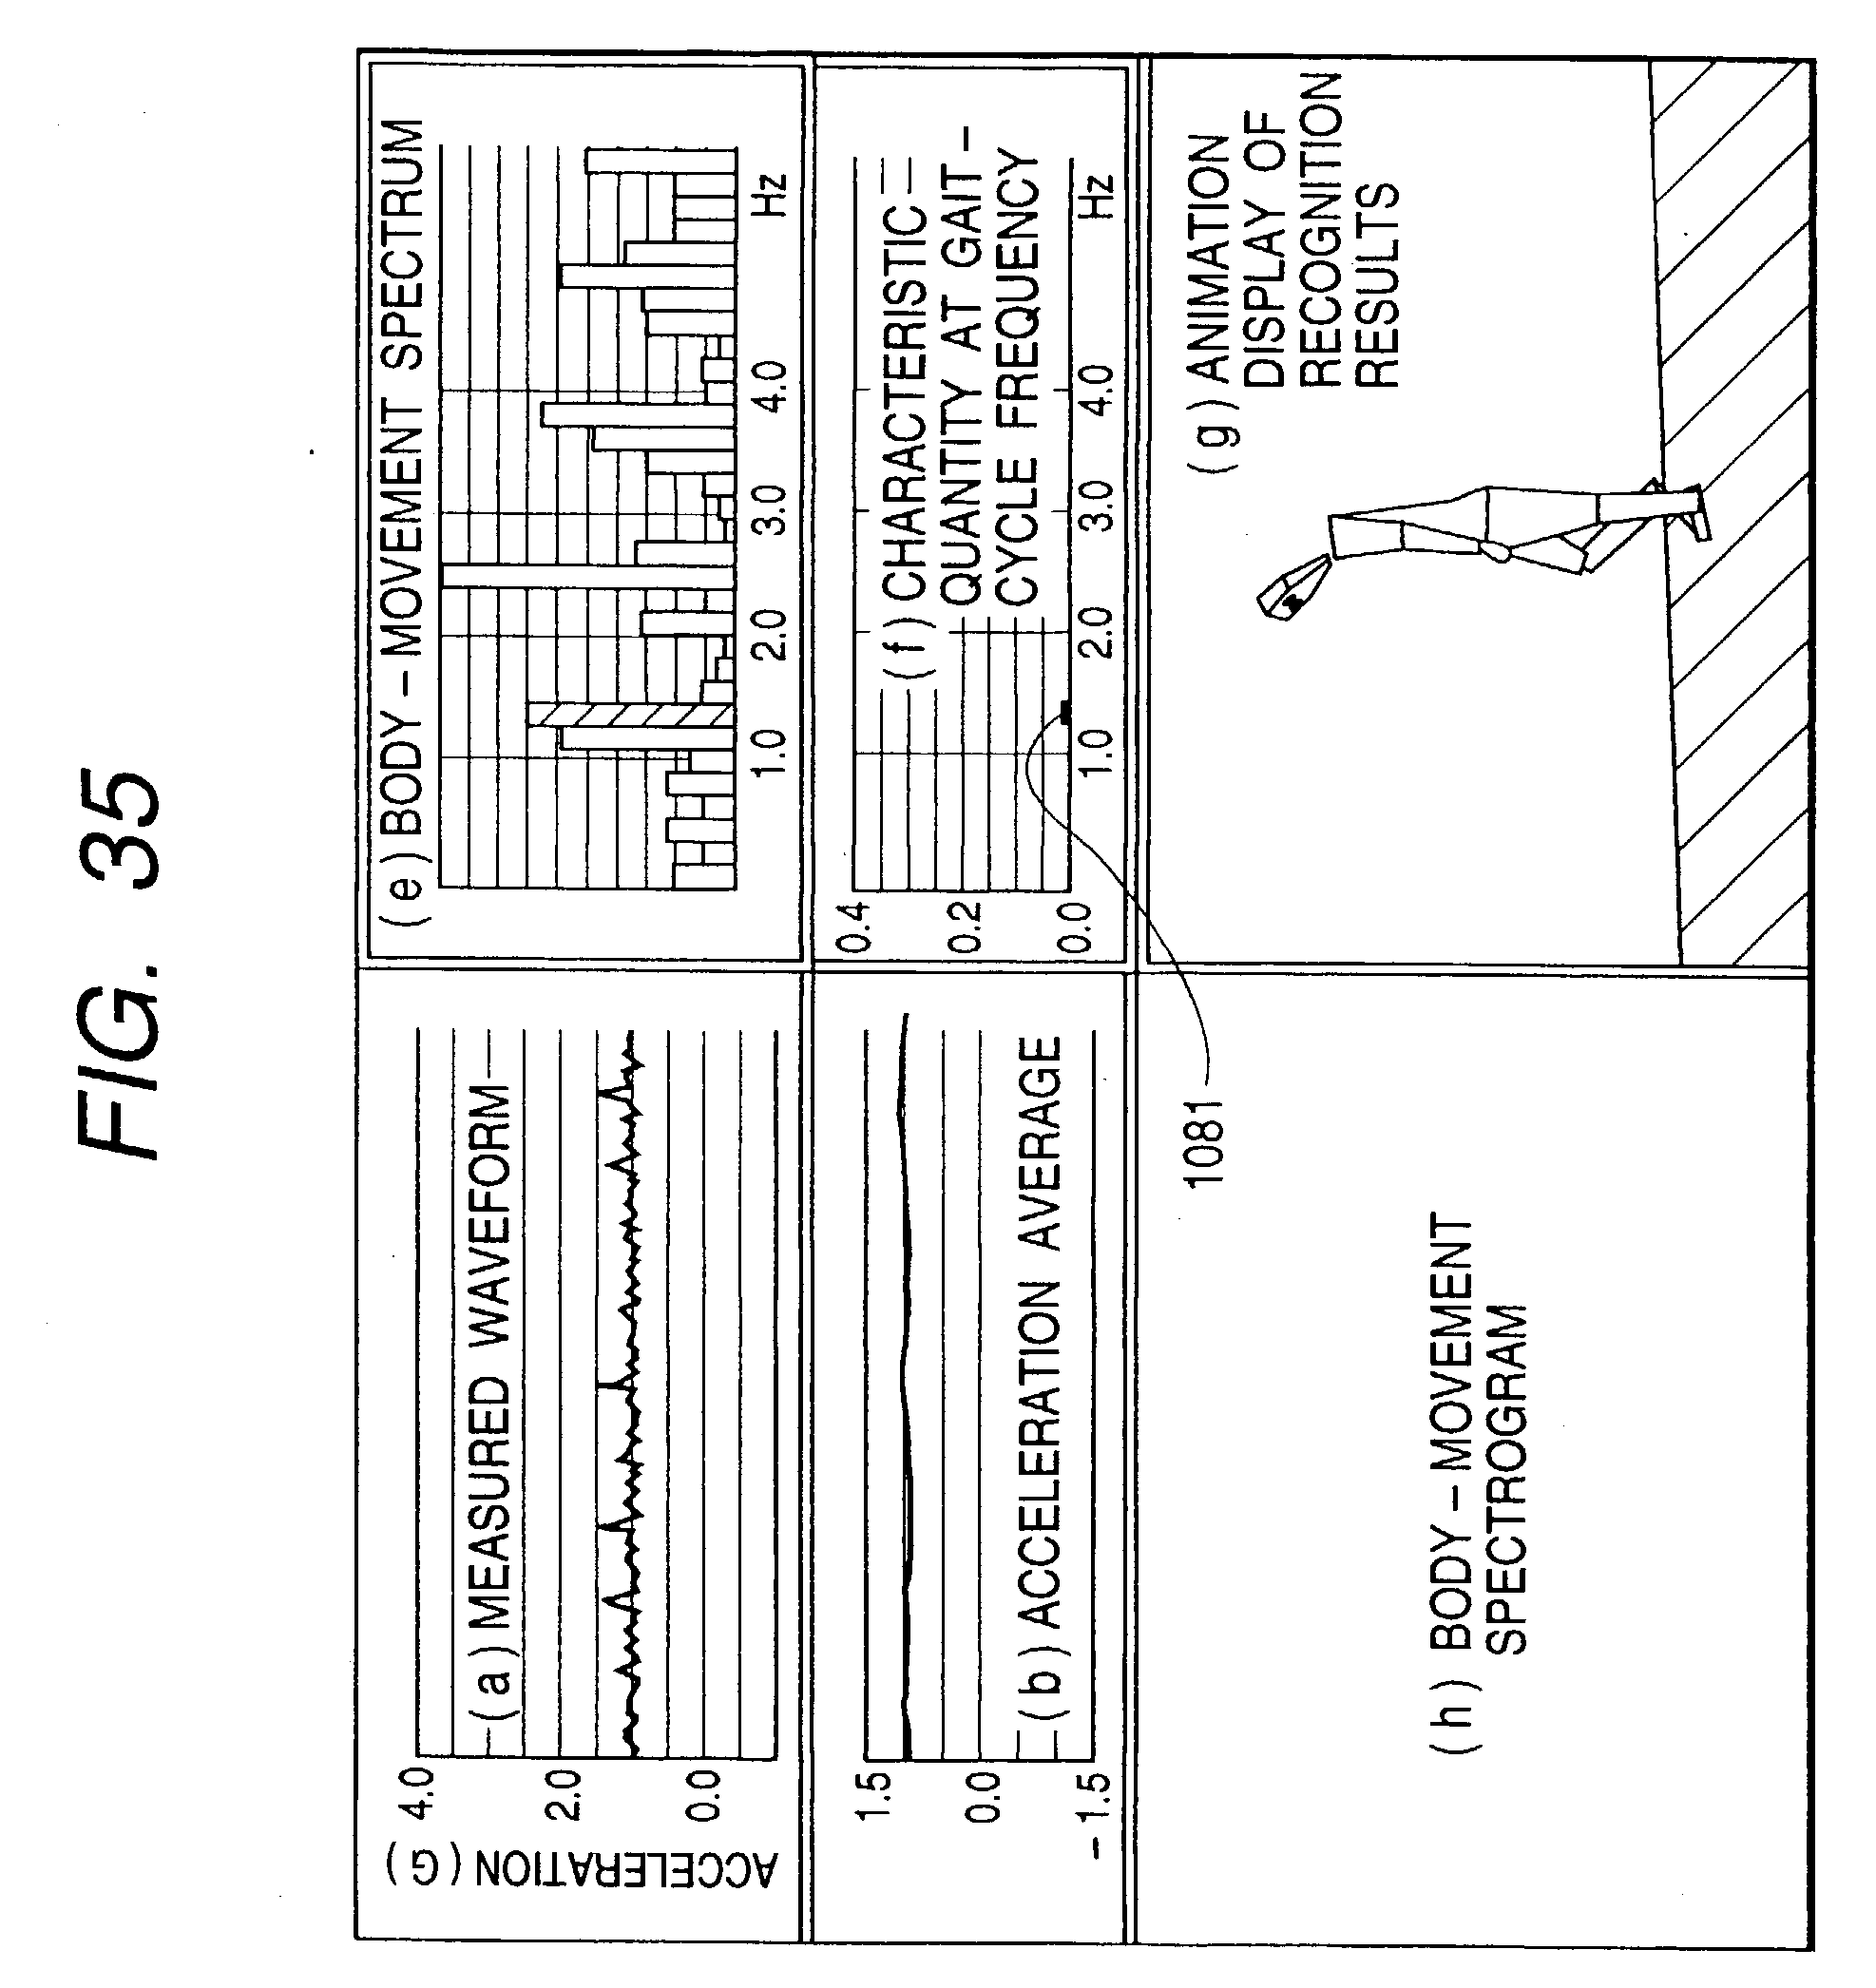 download Wittgenstein Rules